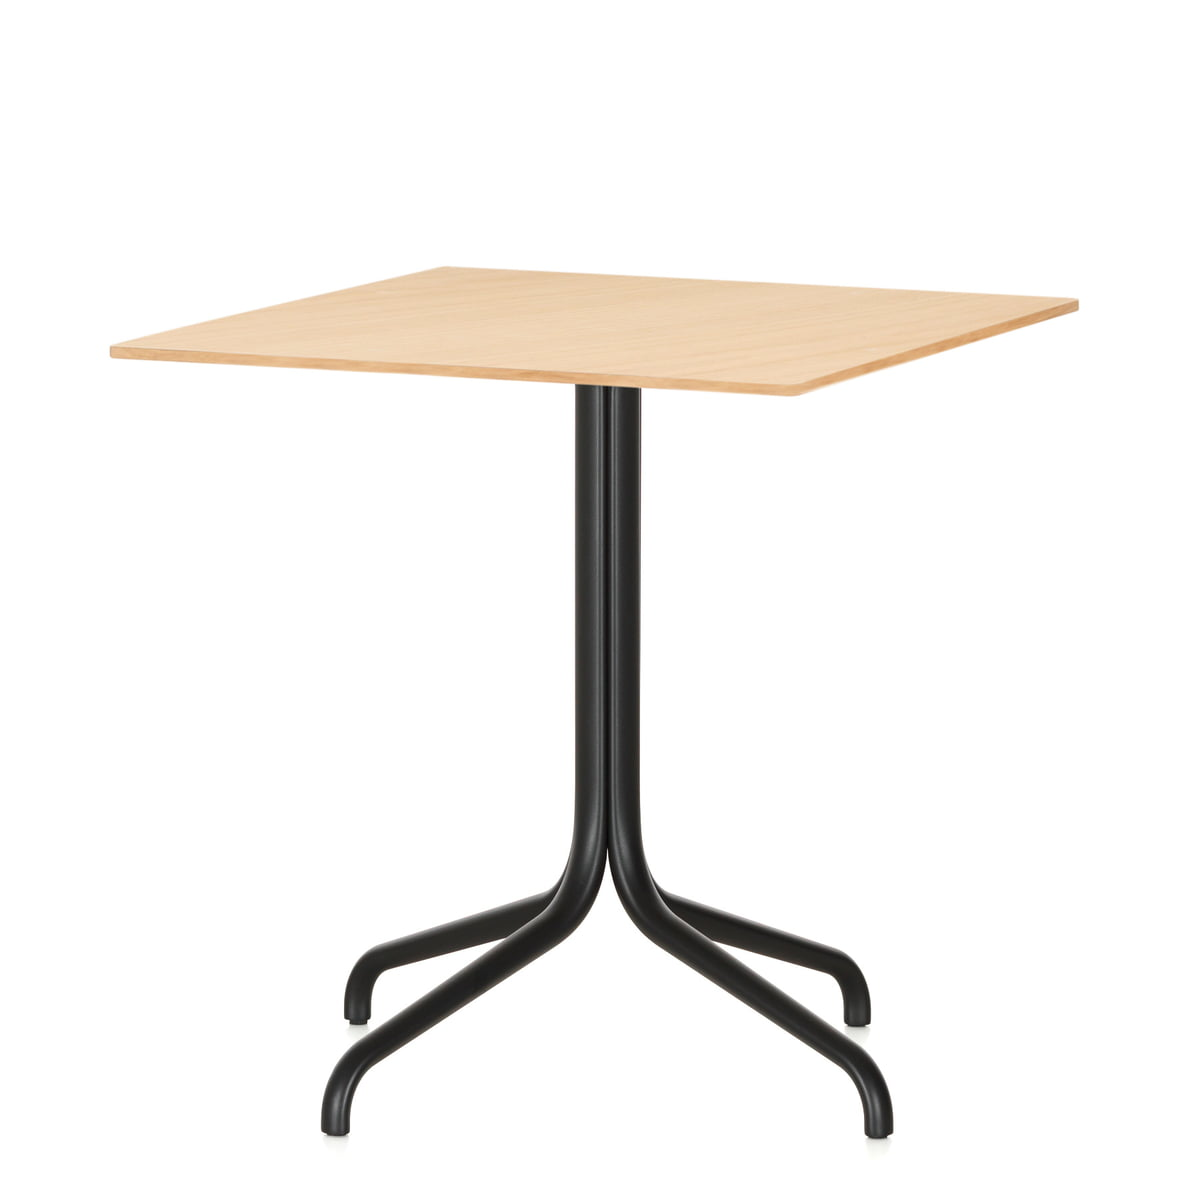 Belleville bistro table by vitra in the home design shop belleville bistro table square 75 x 75 cm by vitra in light oak veneer watchthetrailerfo